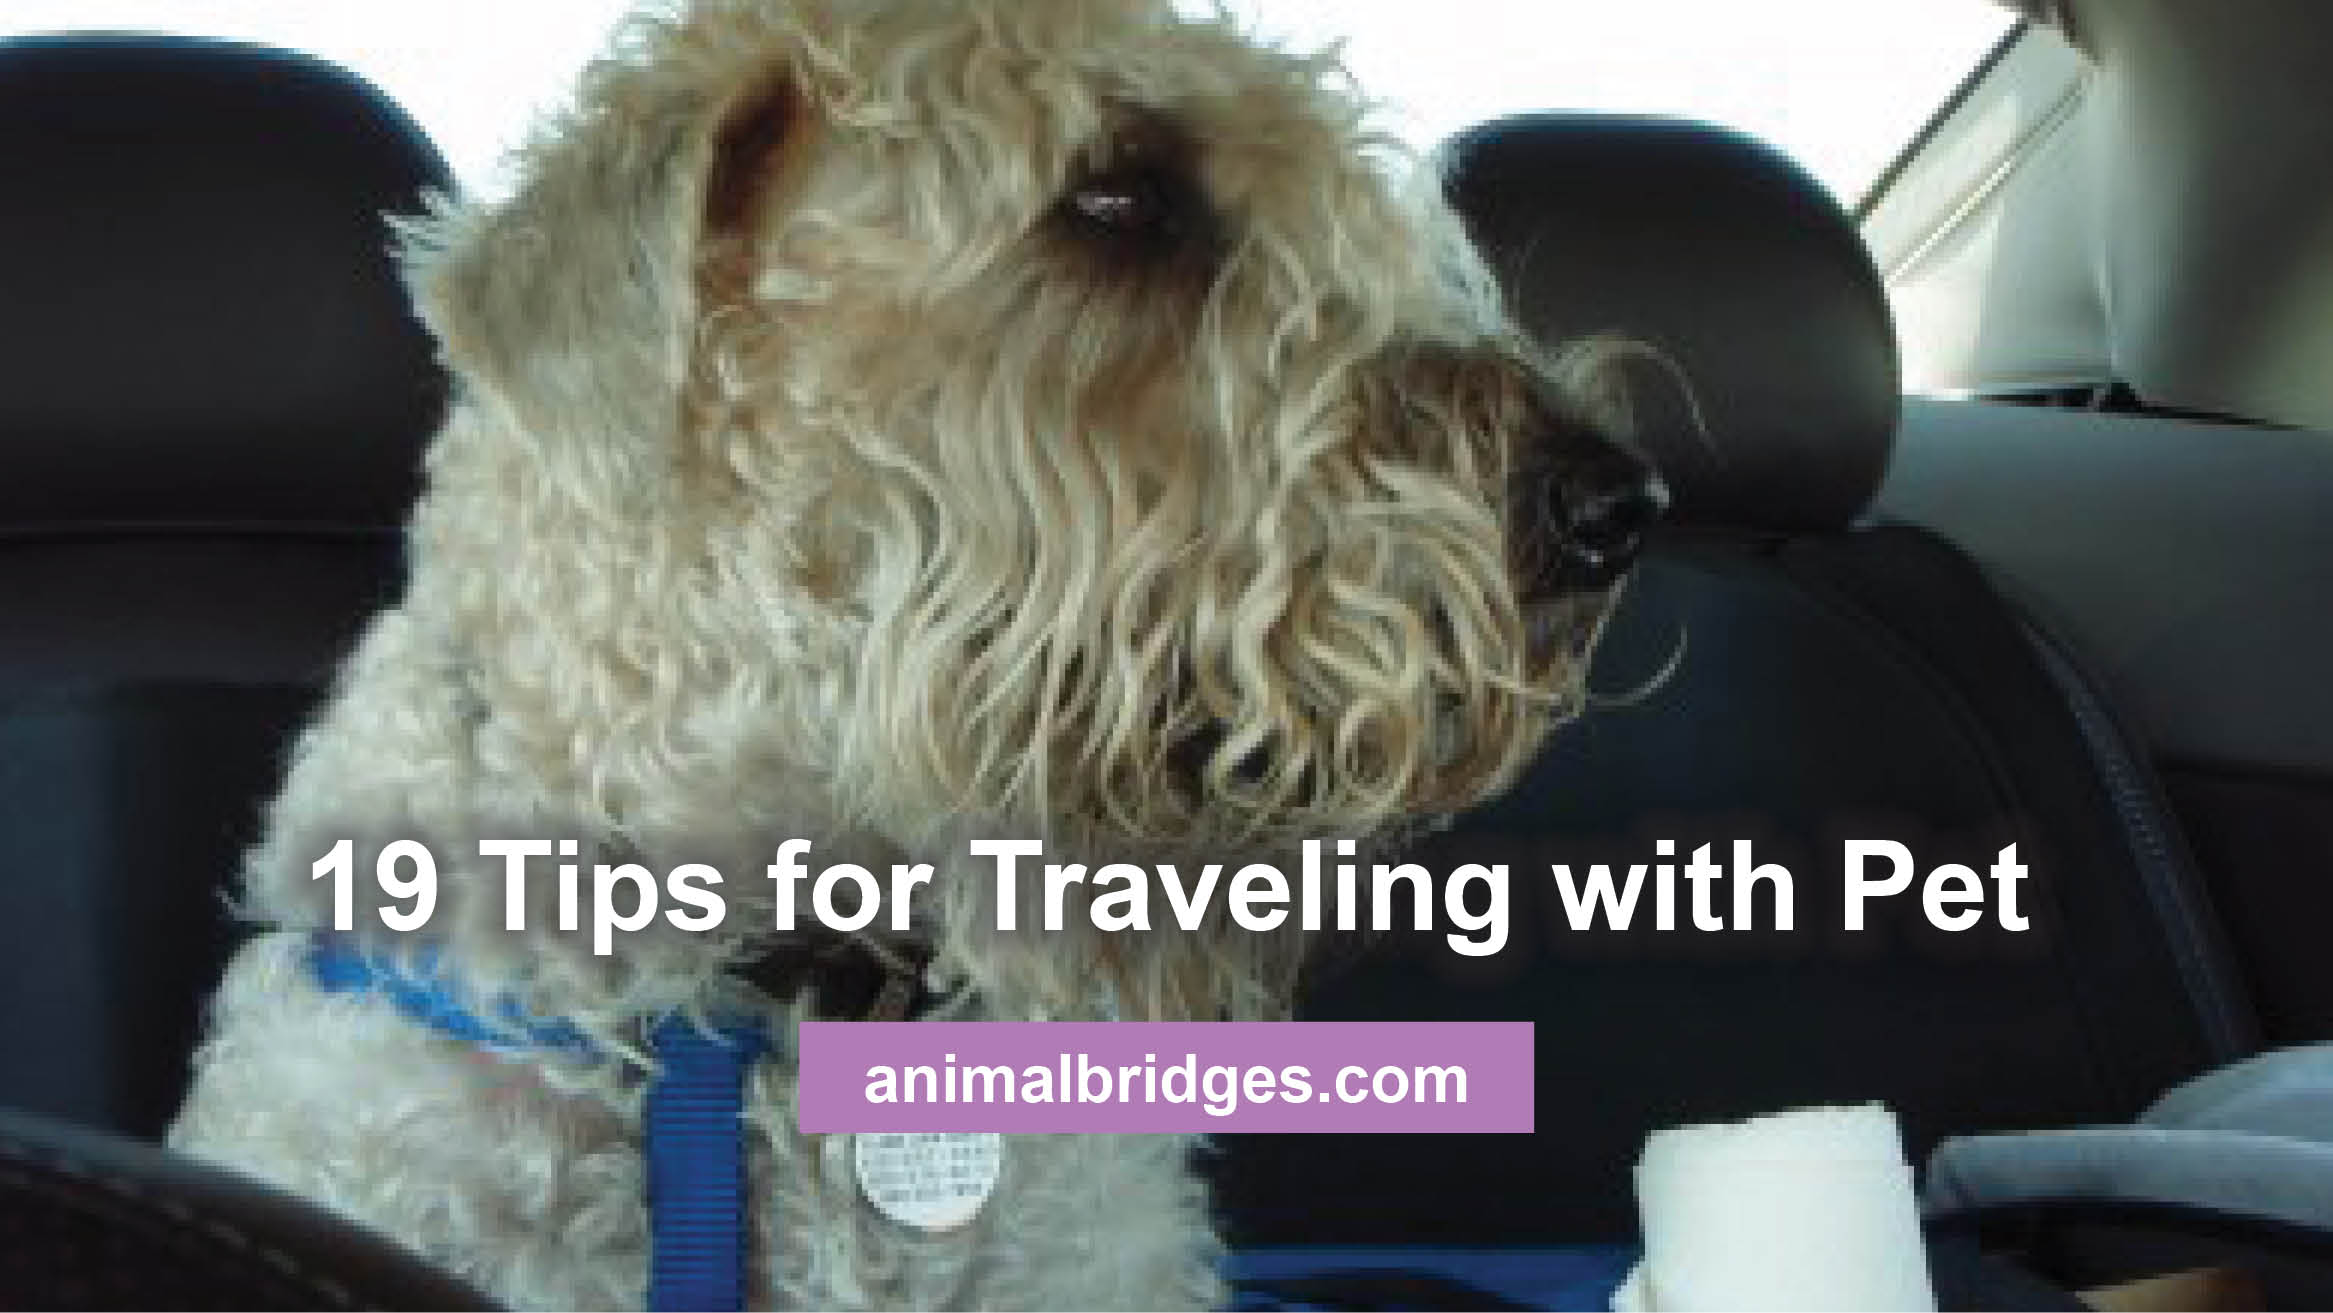 Traveling with pet tips